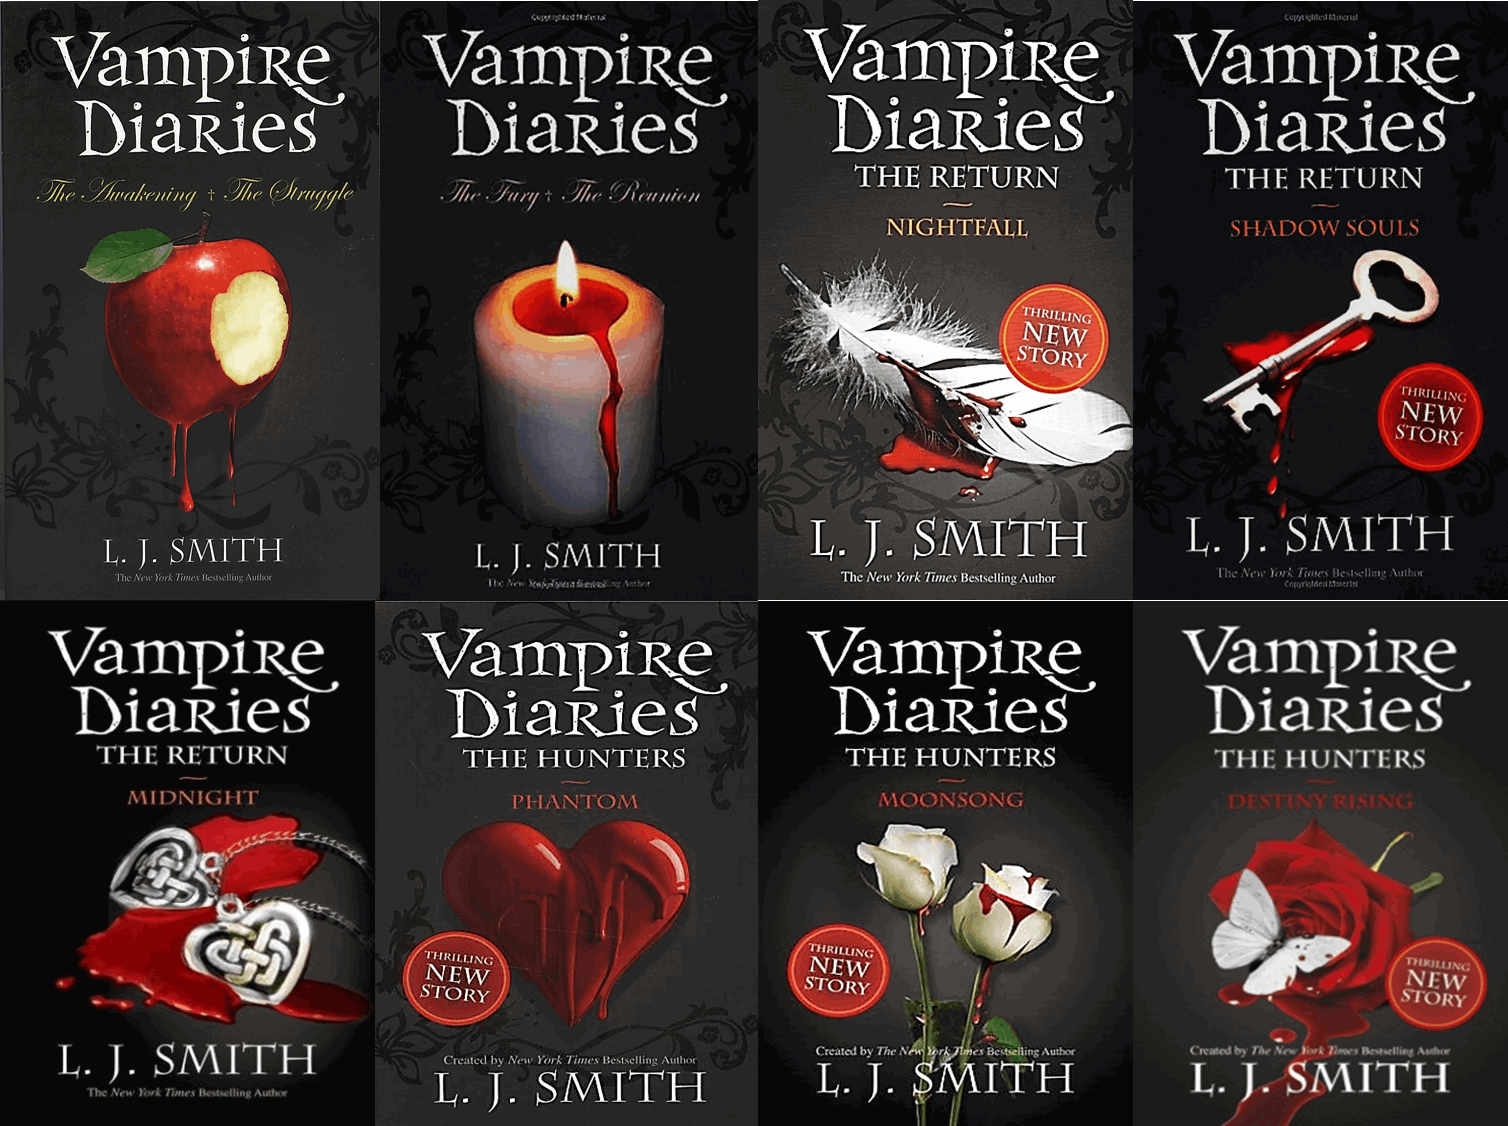 Book Cover Series Wiki ~ The vampire diaries l j smith wiki fandom powered by